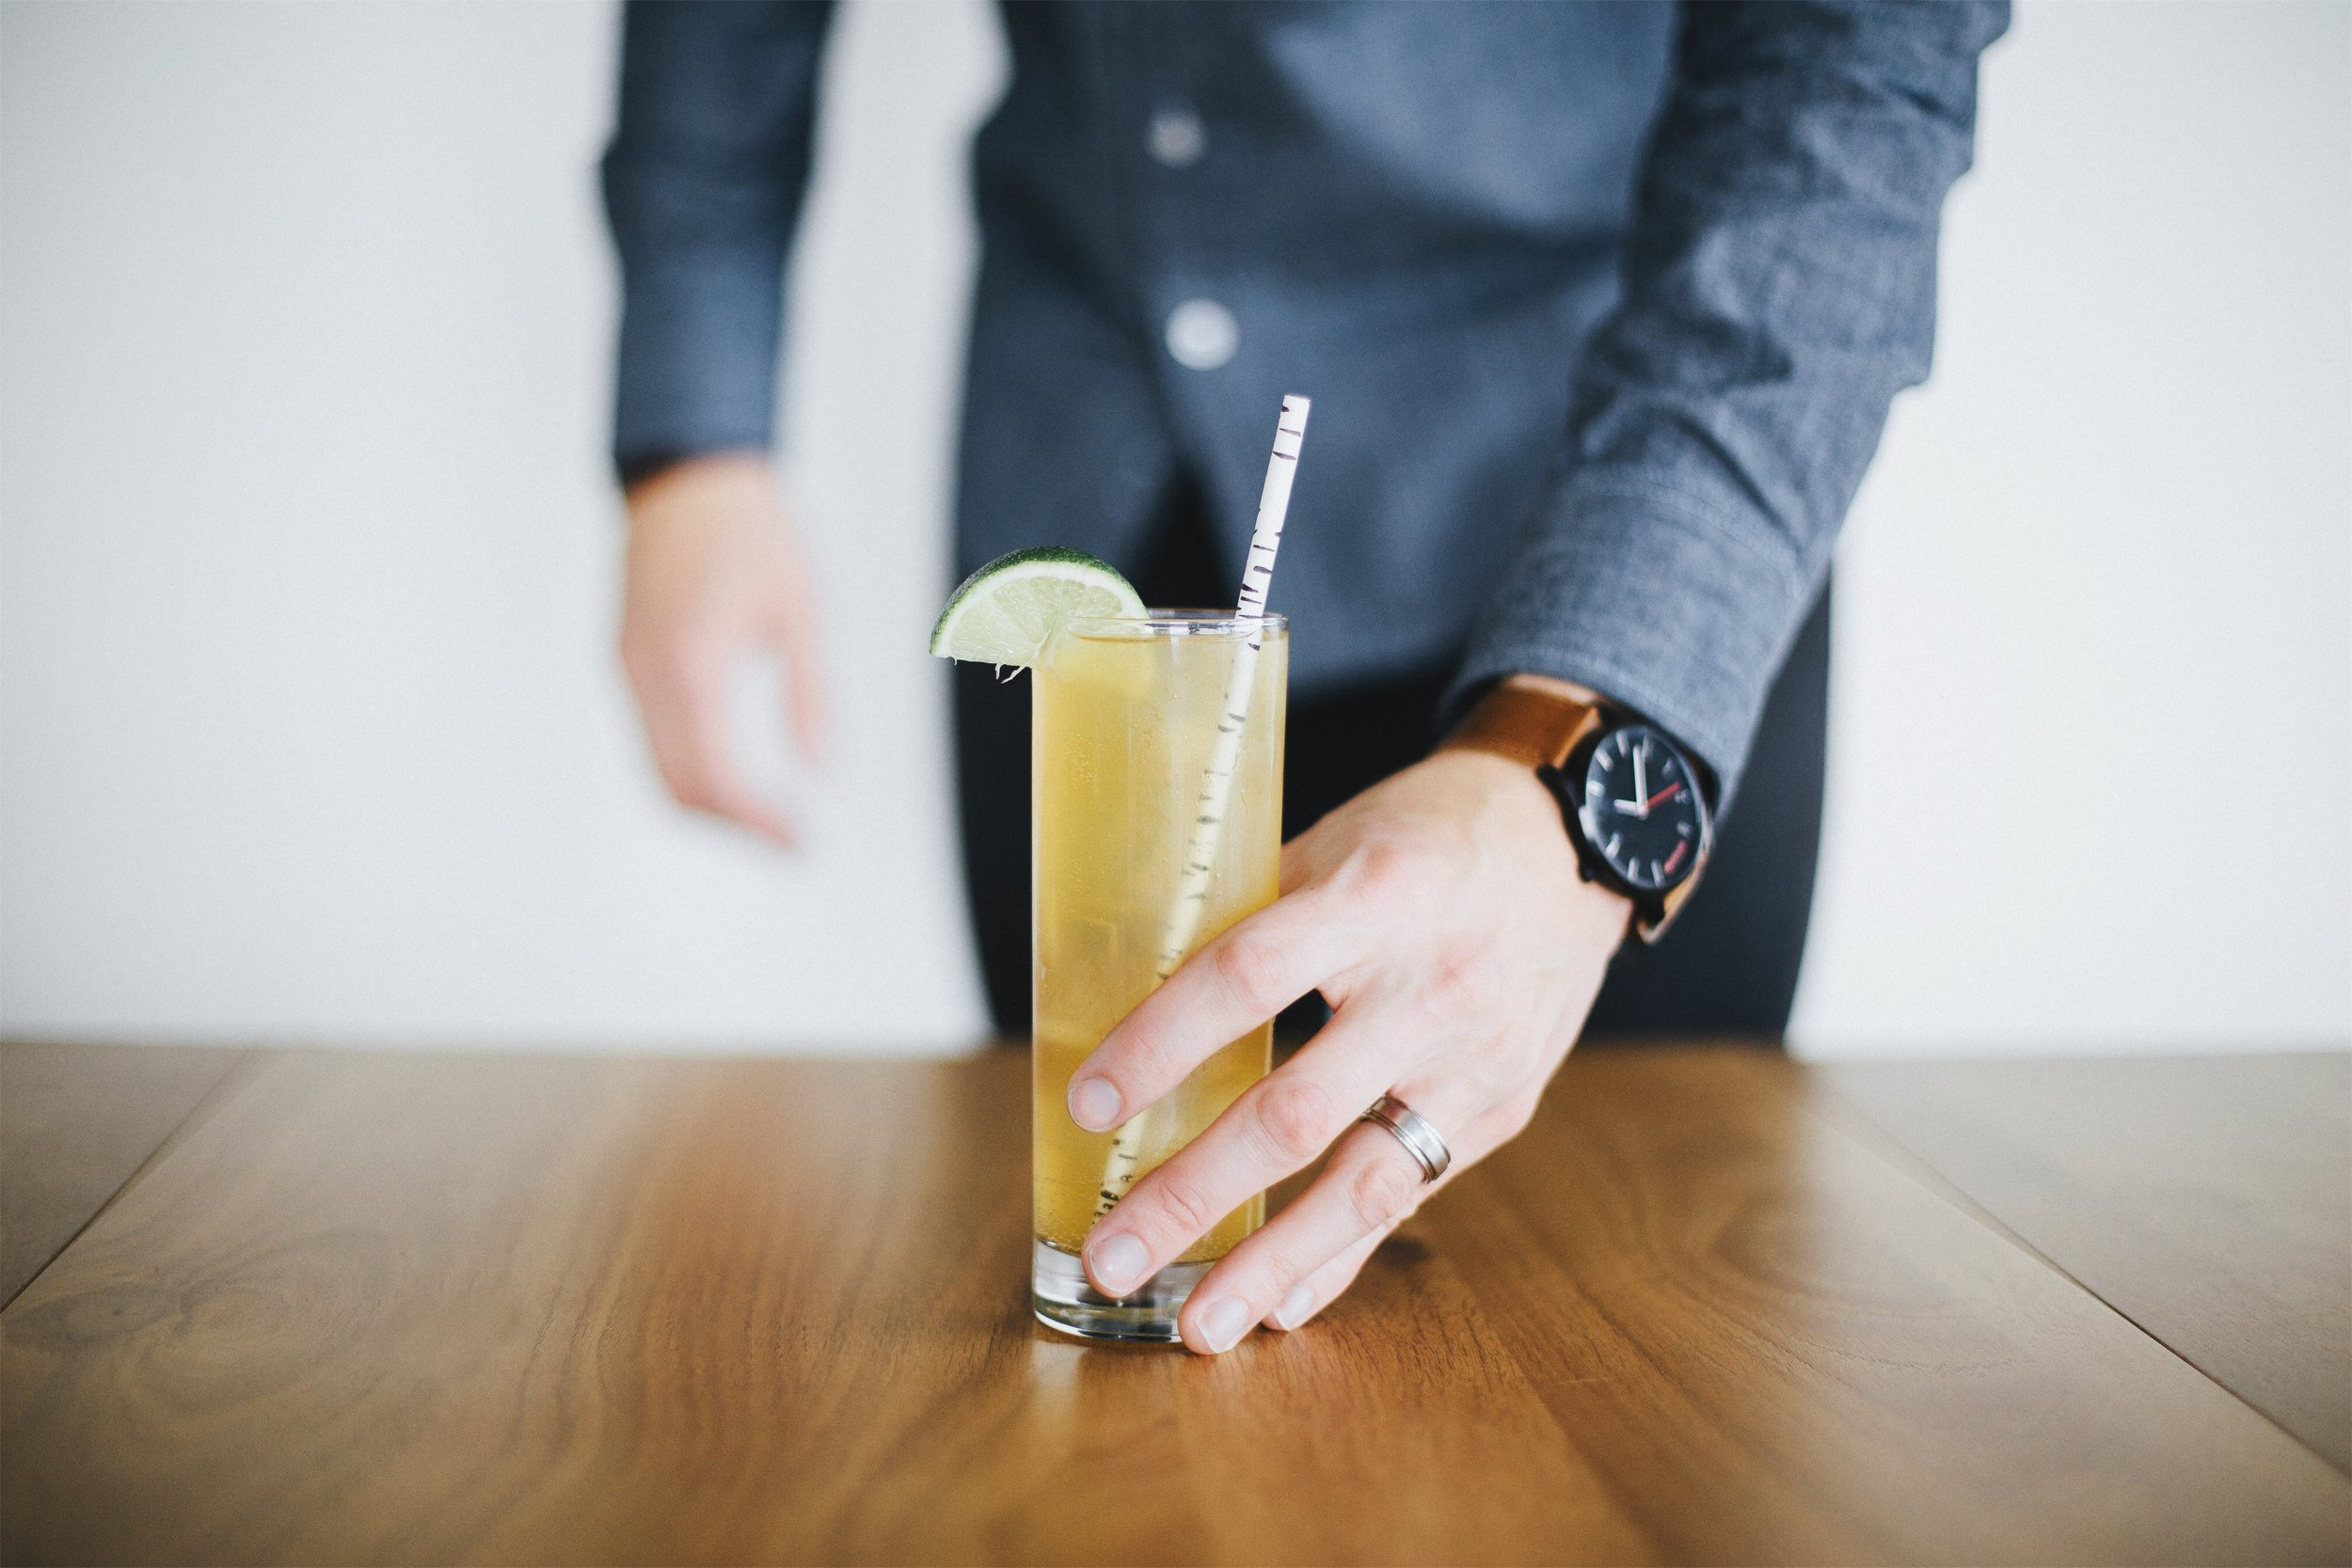 ingredients: - 1 oz Ancho Reyes liqueur1 oz Irish Whiskey1/2 oz fresh lime juiceGinger beerGarnish: lime wedge